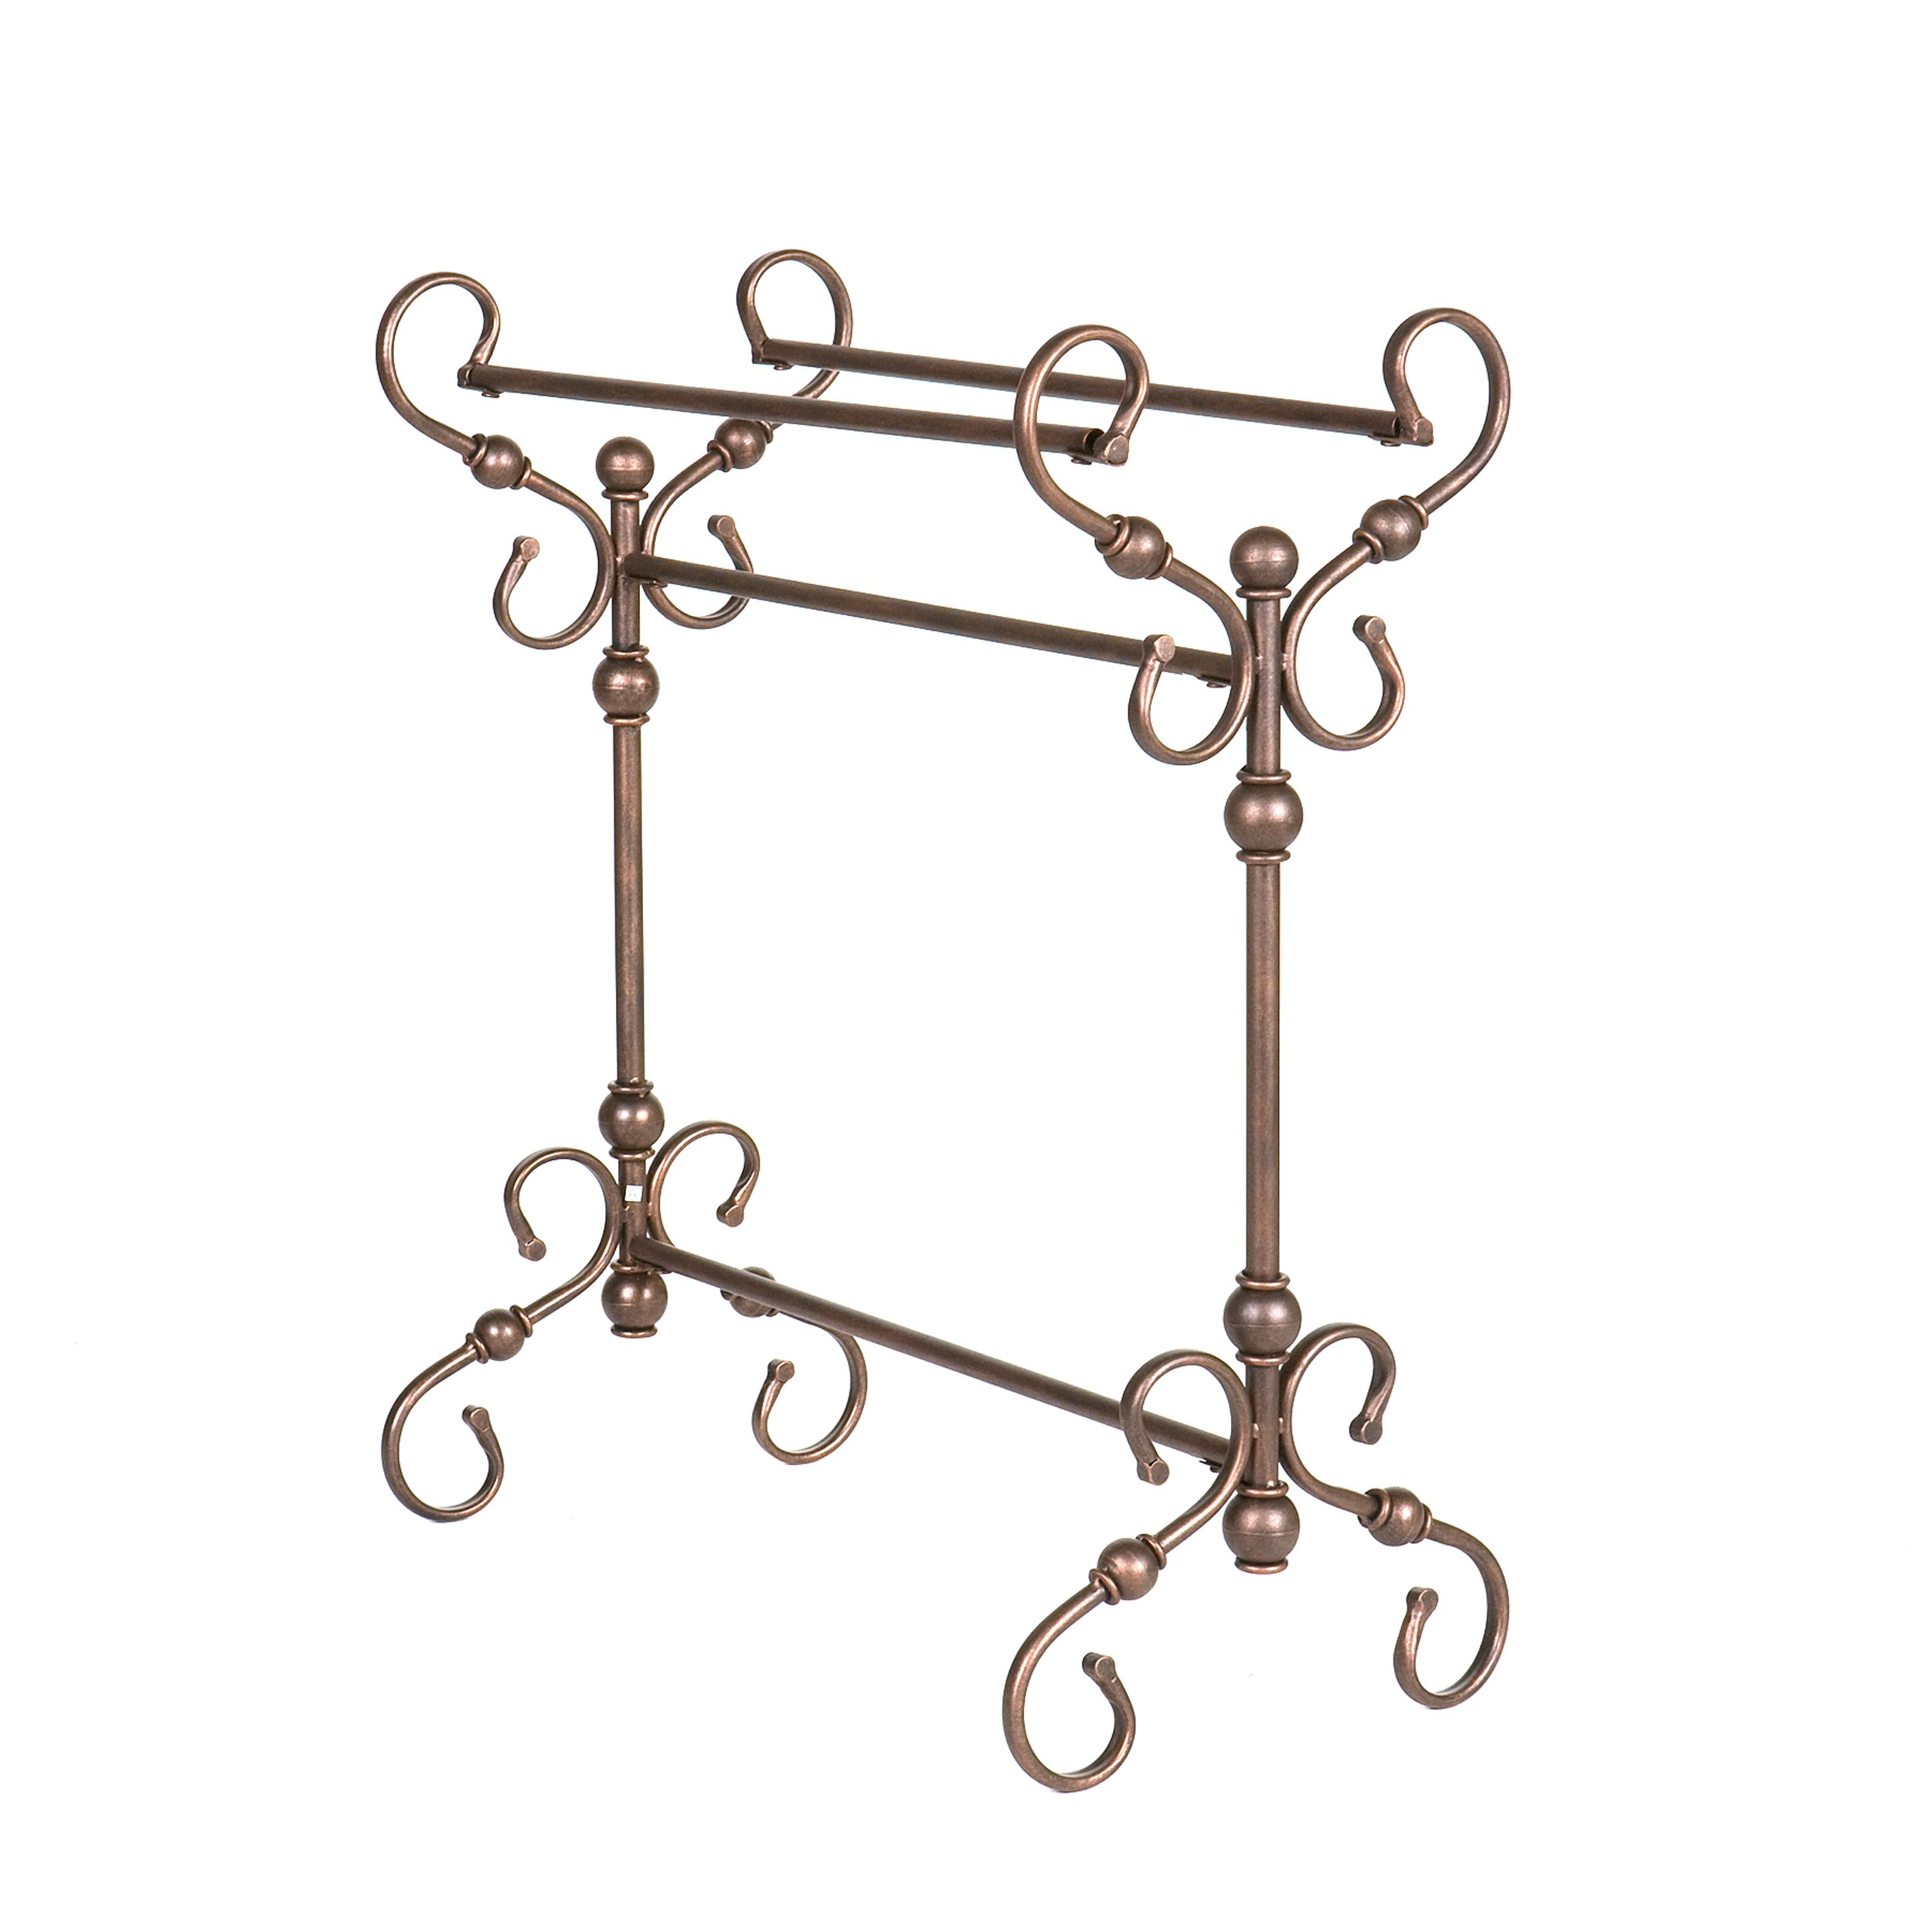 Lourdes Blanket Rack - Metal Scroll Work w/ Antique Bronze Finish - Traditional Style by Southern Enterprises (Image #4)